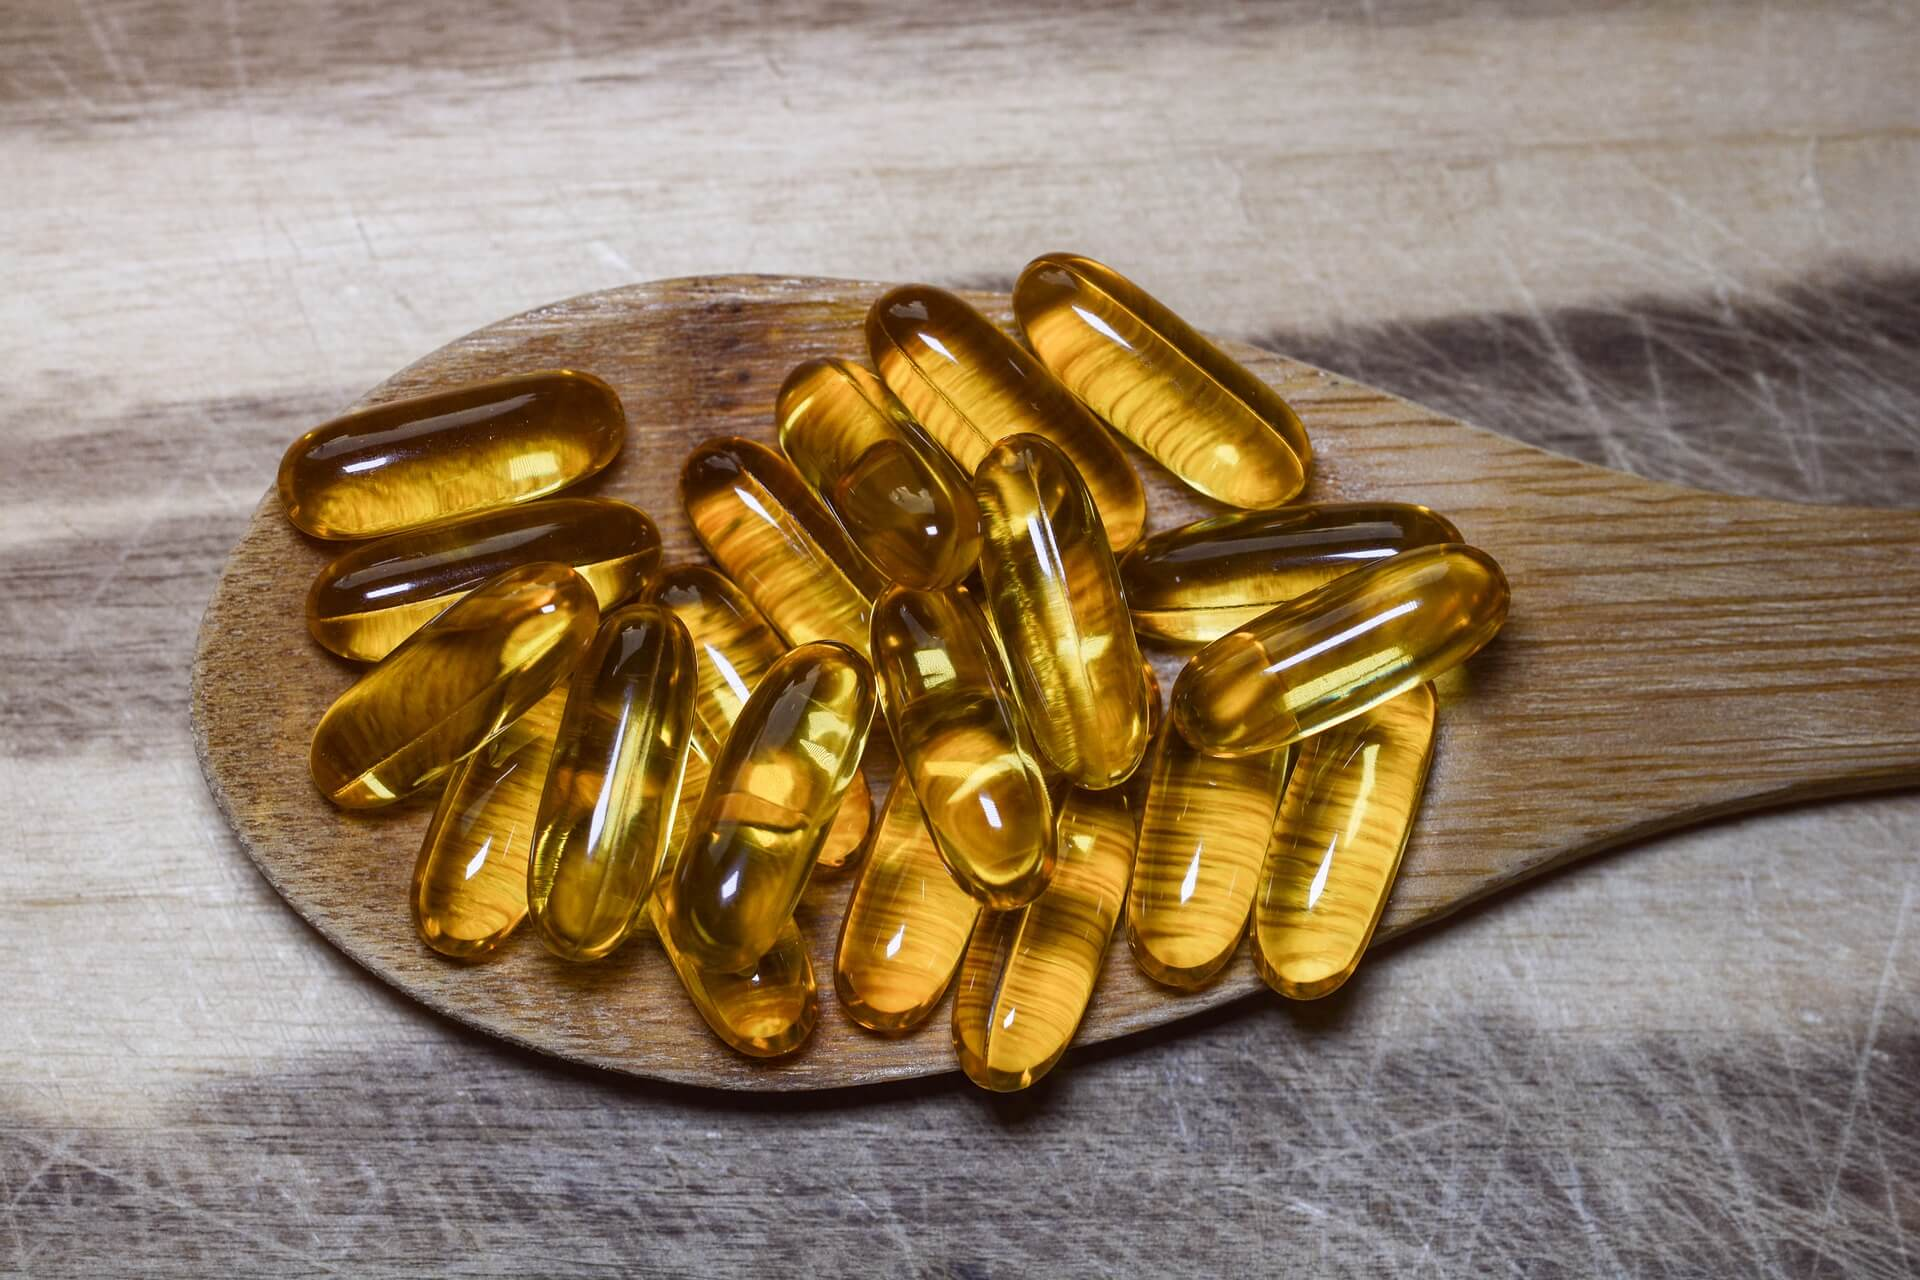 vitamin supplements on wooden spoon